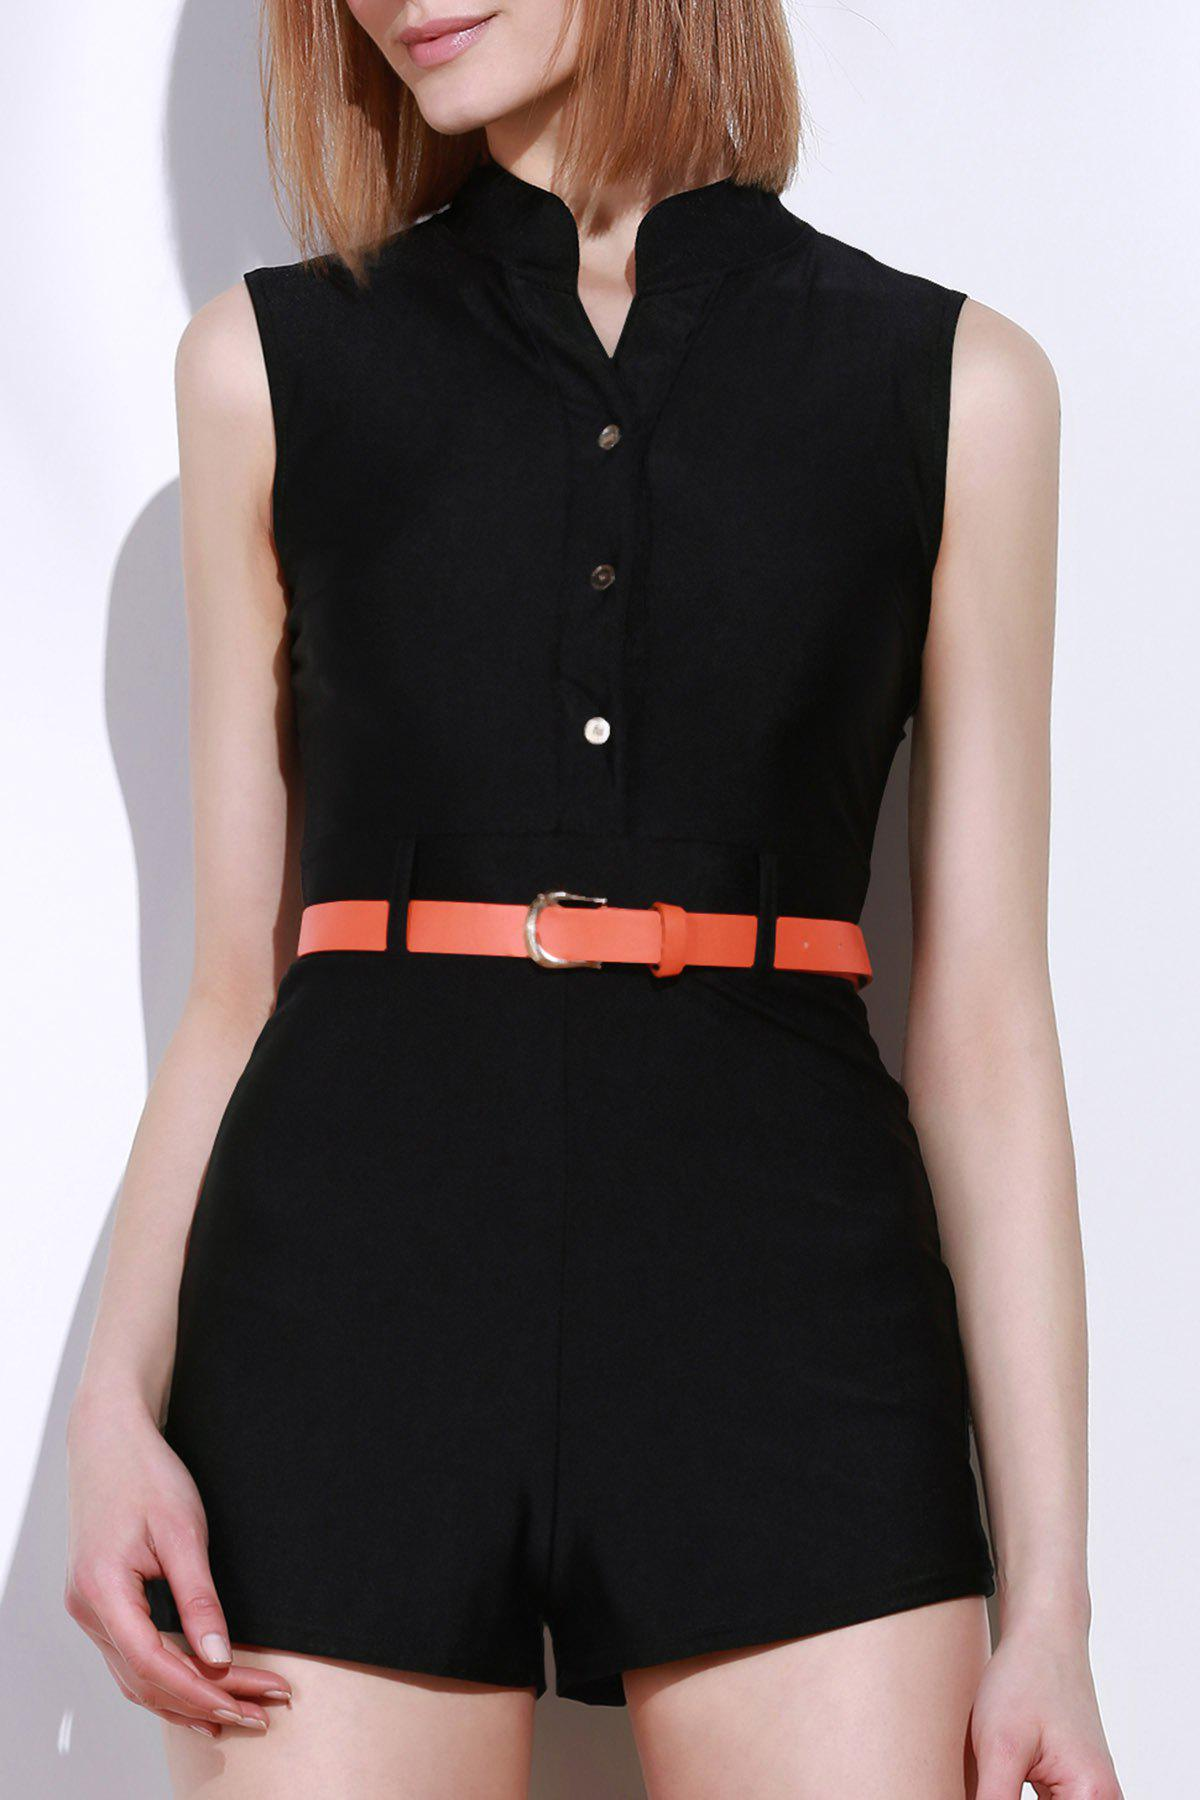 Stylish Stand-Up Collar Sleeveless Slimming Button Design Women's Romper